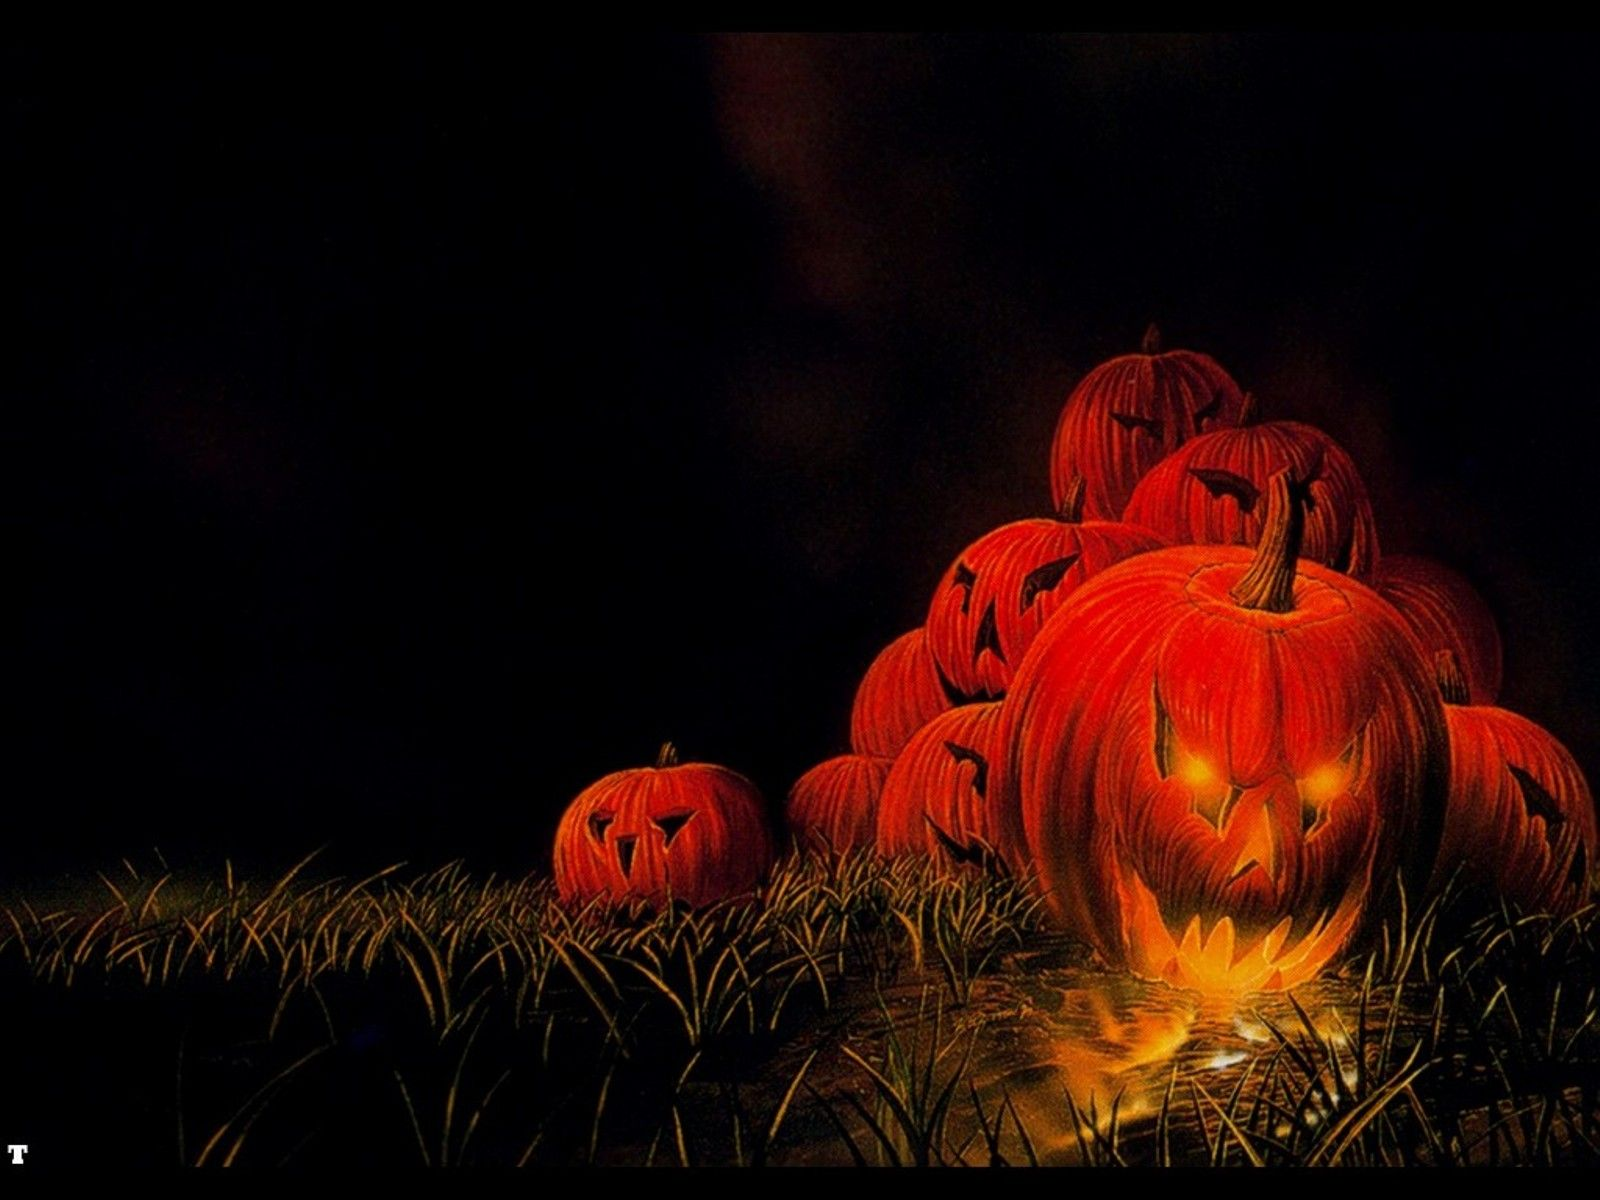 Scary Halloween Backgrounds HD 1600x1200